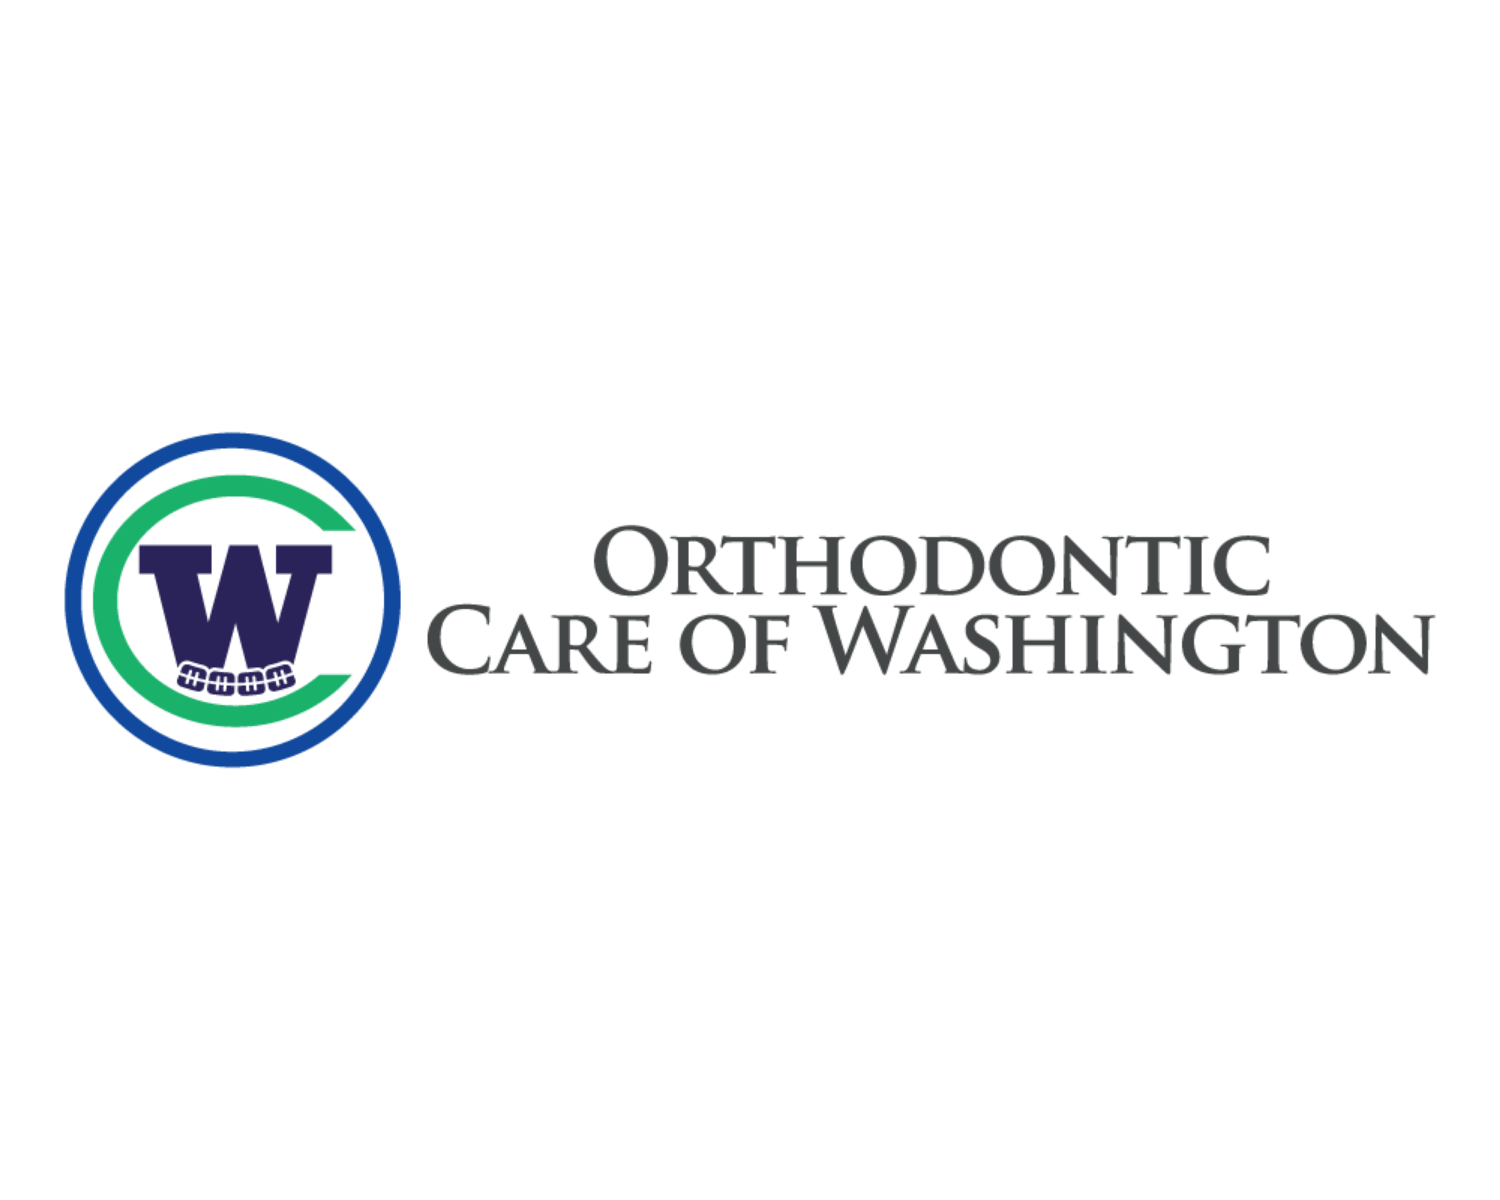 Orthodontic Care of Tacoma